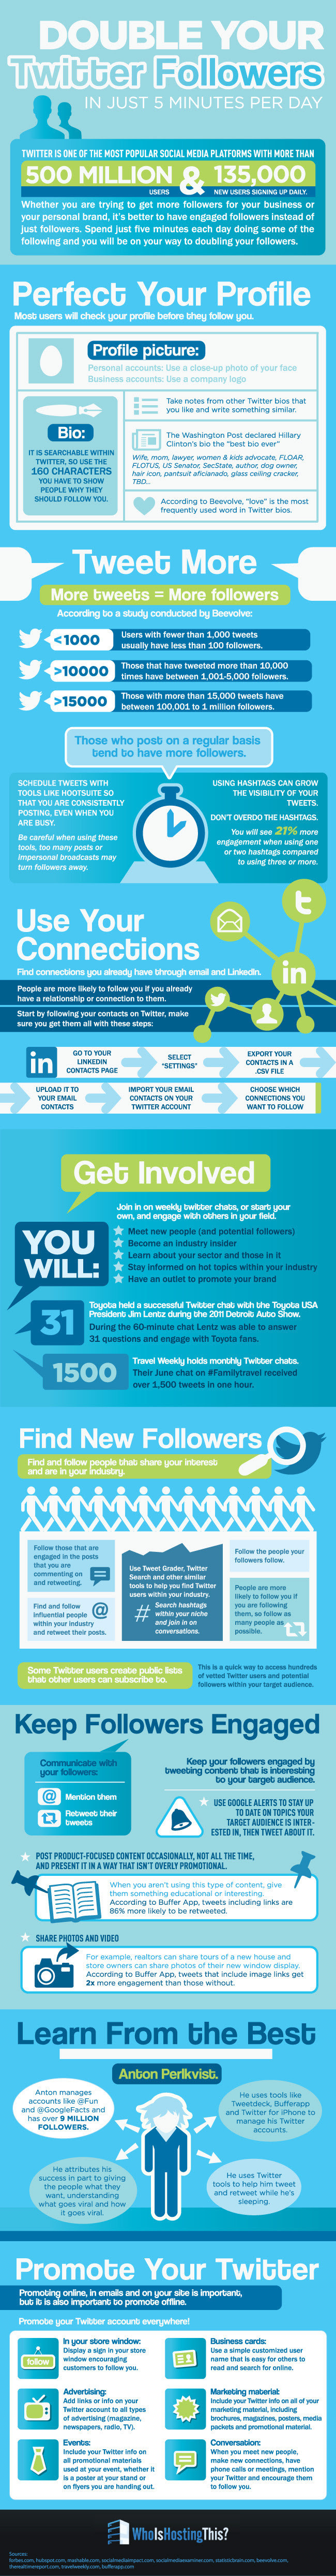 Double Your Twitter Followers In Just 5 Minutes Per Day - infographic